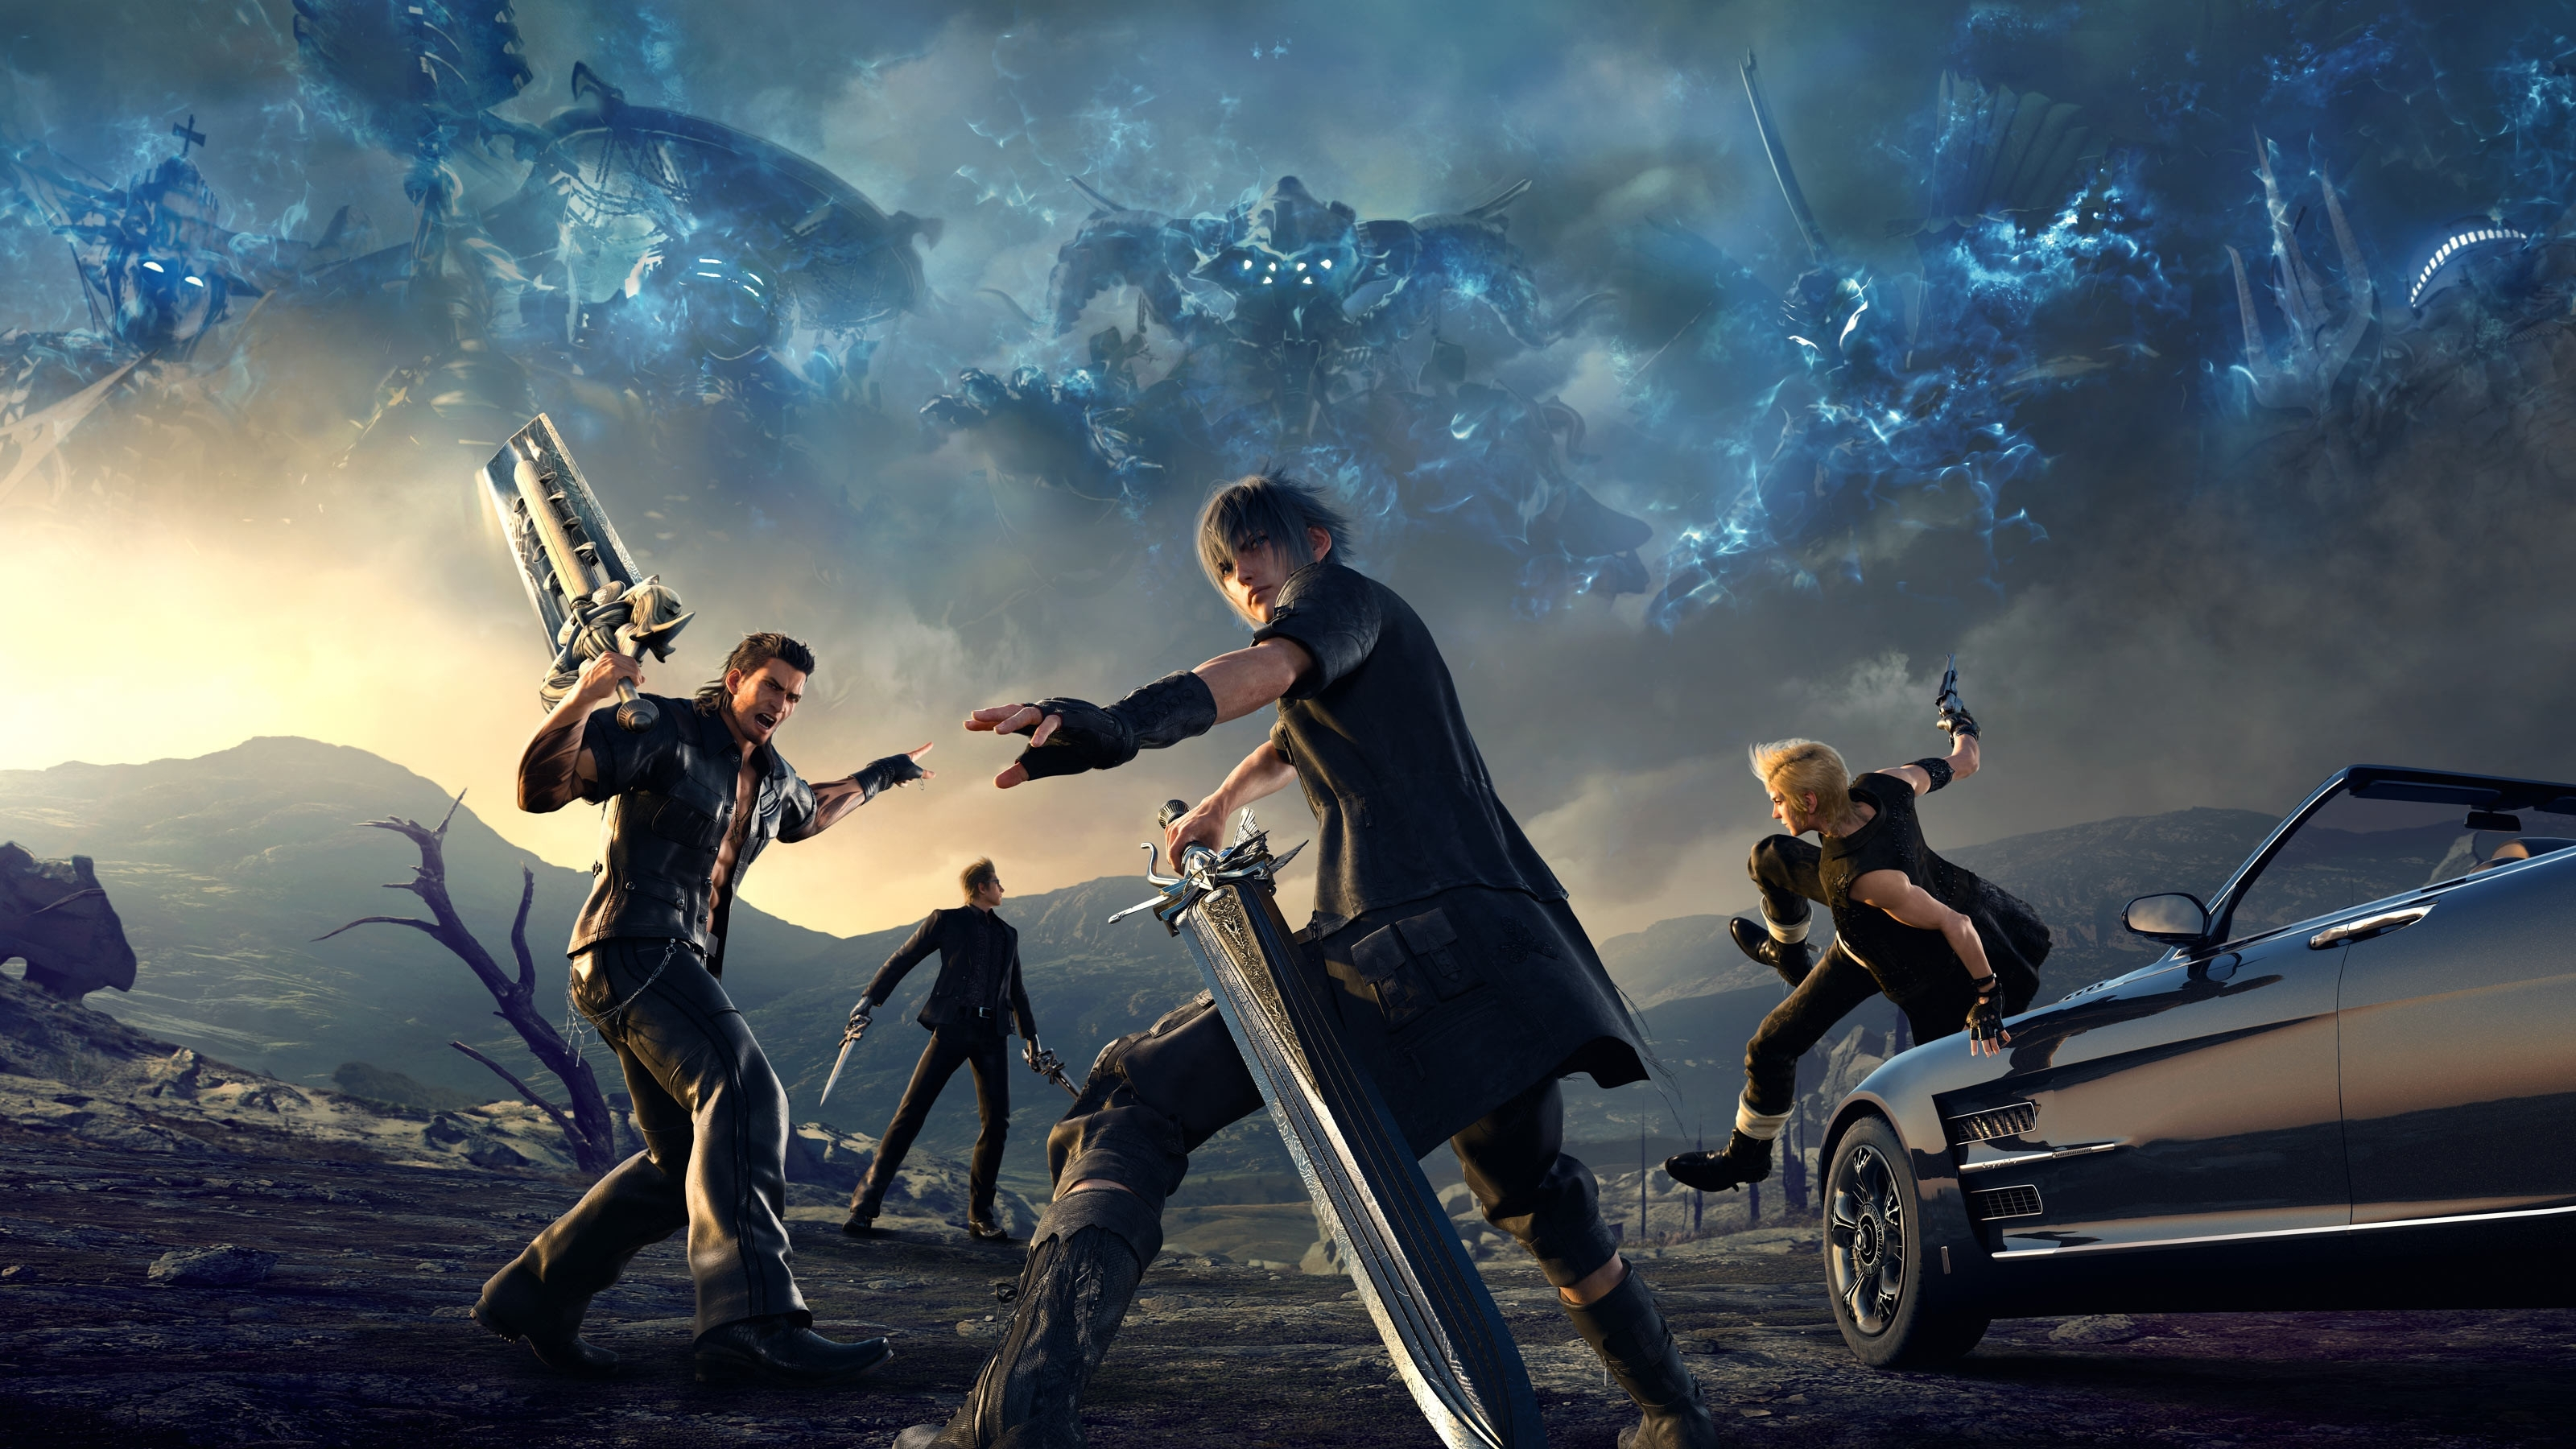 final fantasy xv hd wallpaper (81+ images)